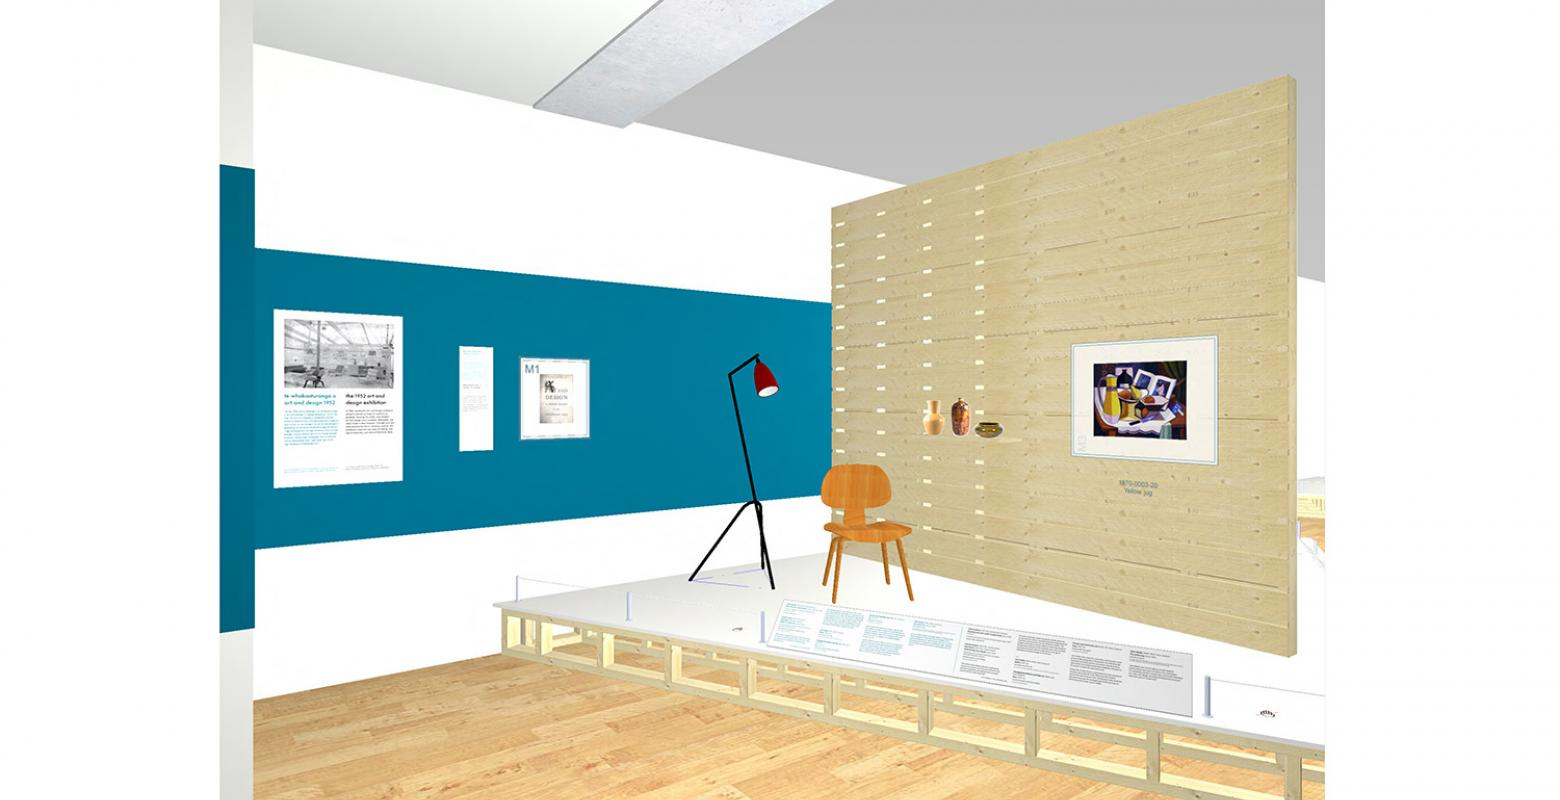 A computer drawing of a space in a museum